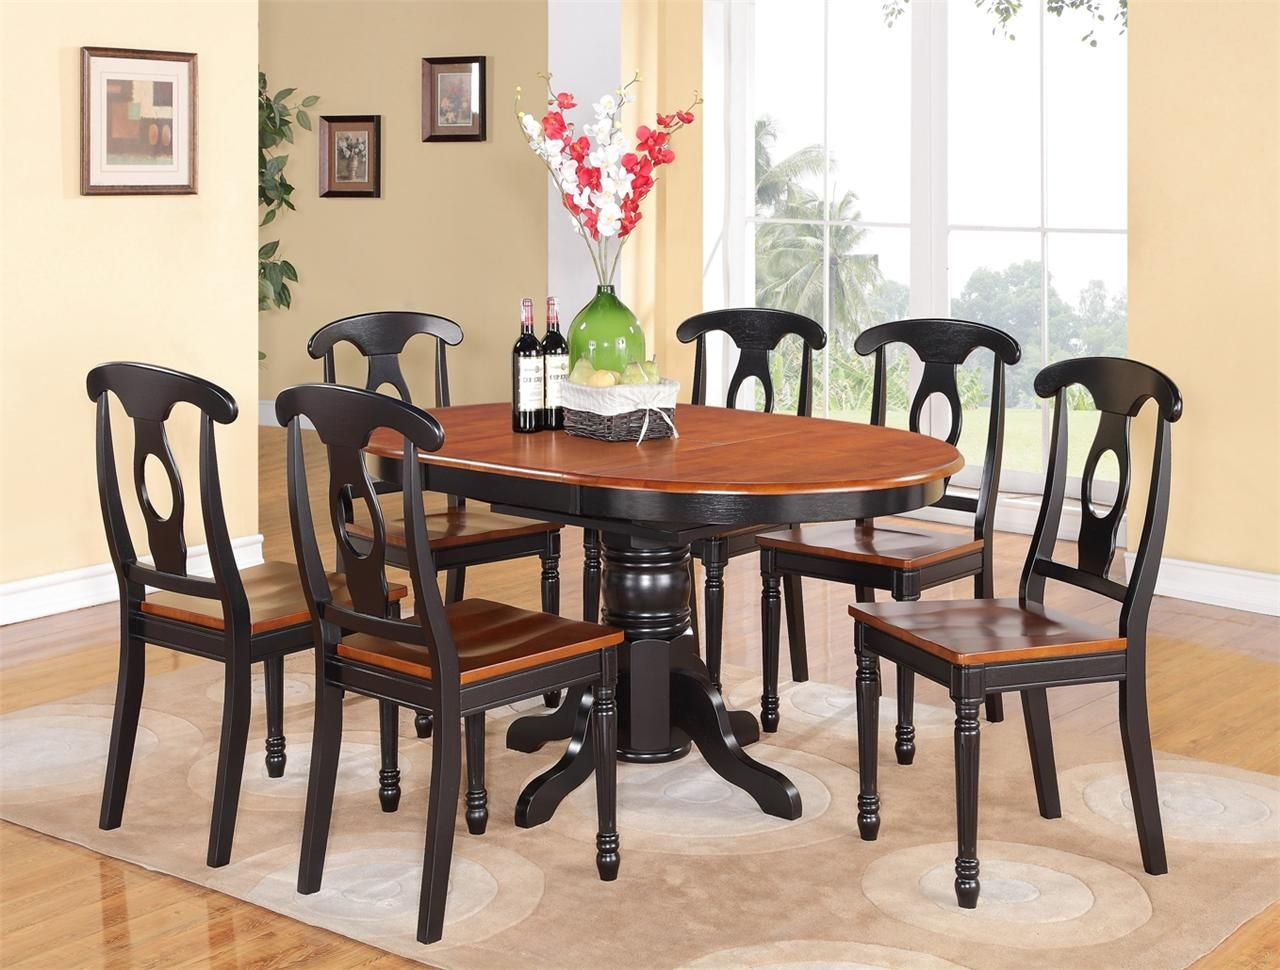 Black Stained Teak Wood Dining Table With Oval Brown Top And 6 Oval Table Dining Dining Table In Kitchen Wood Dining Table